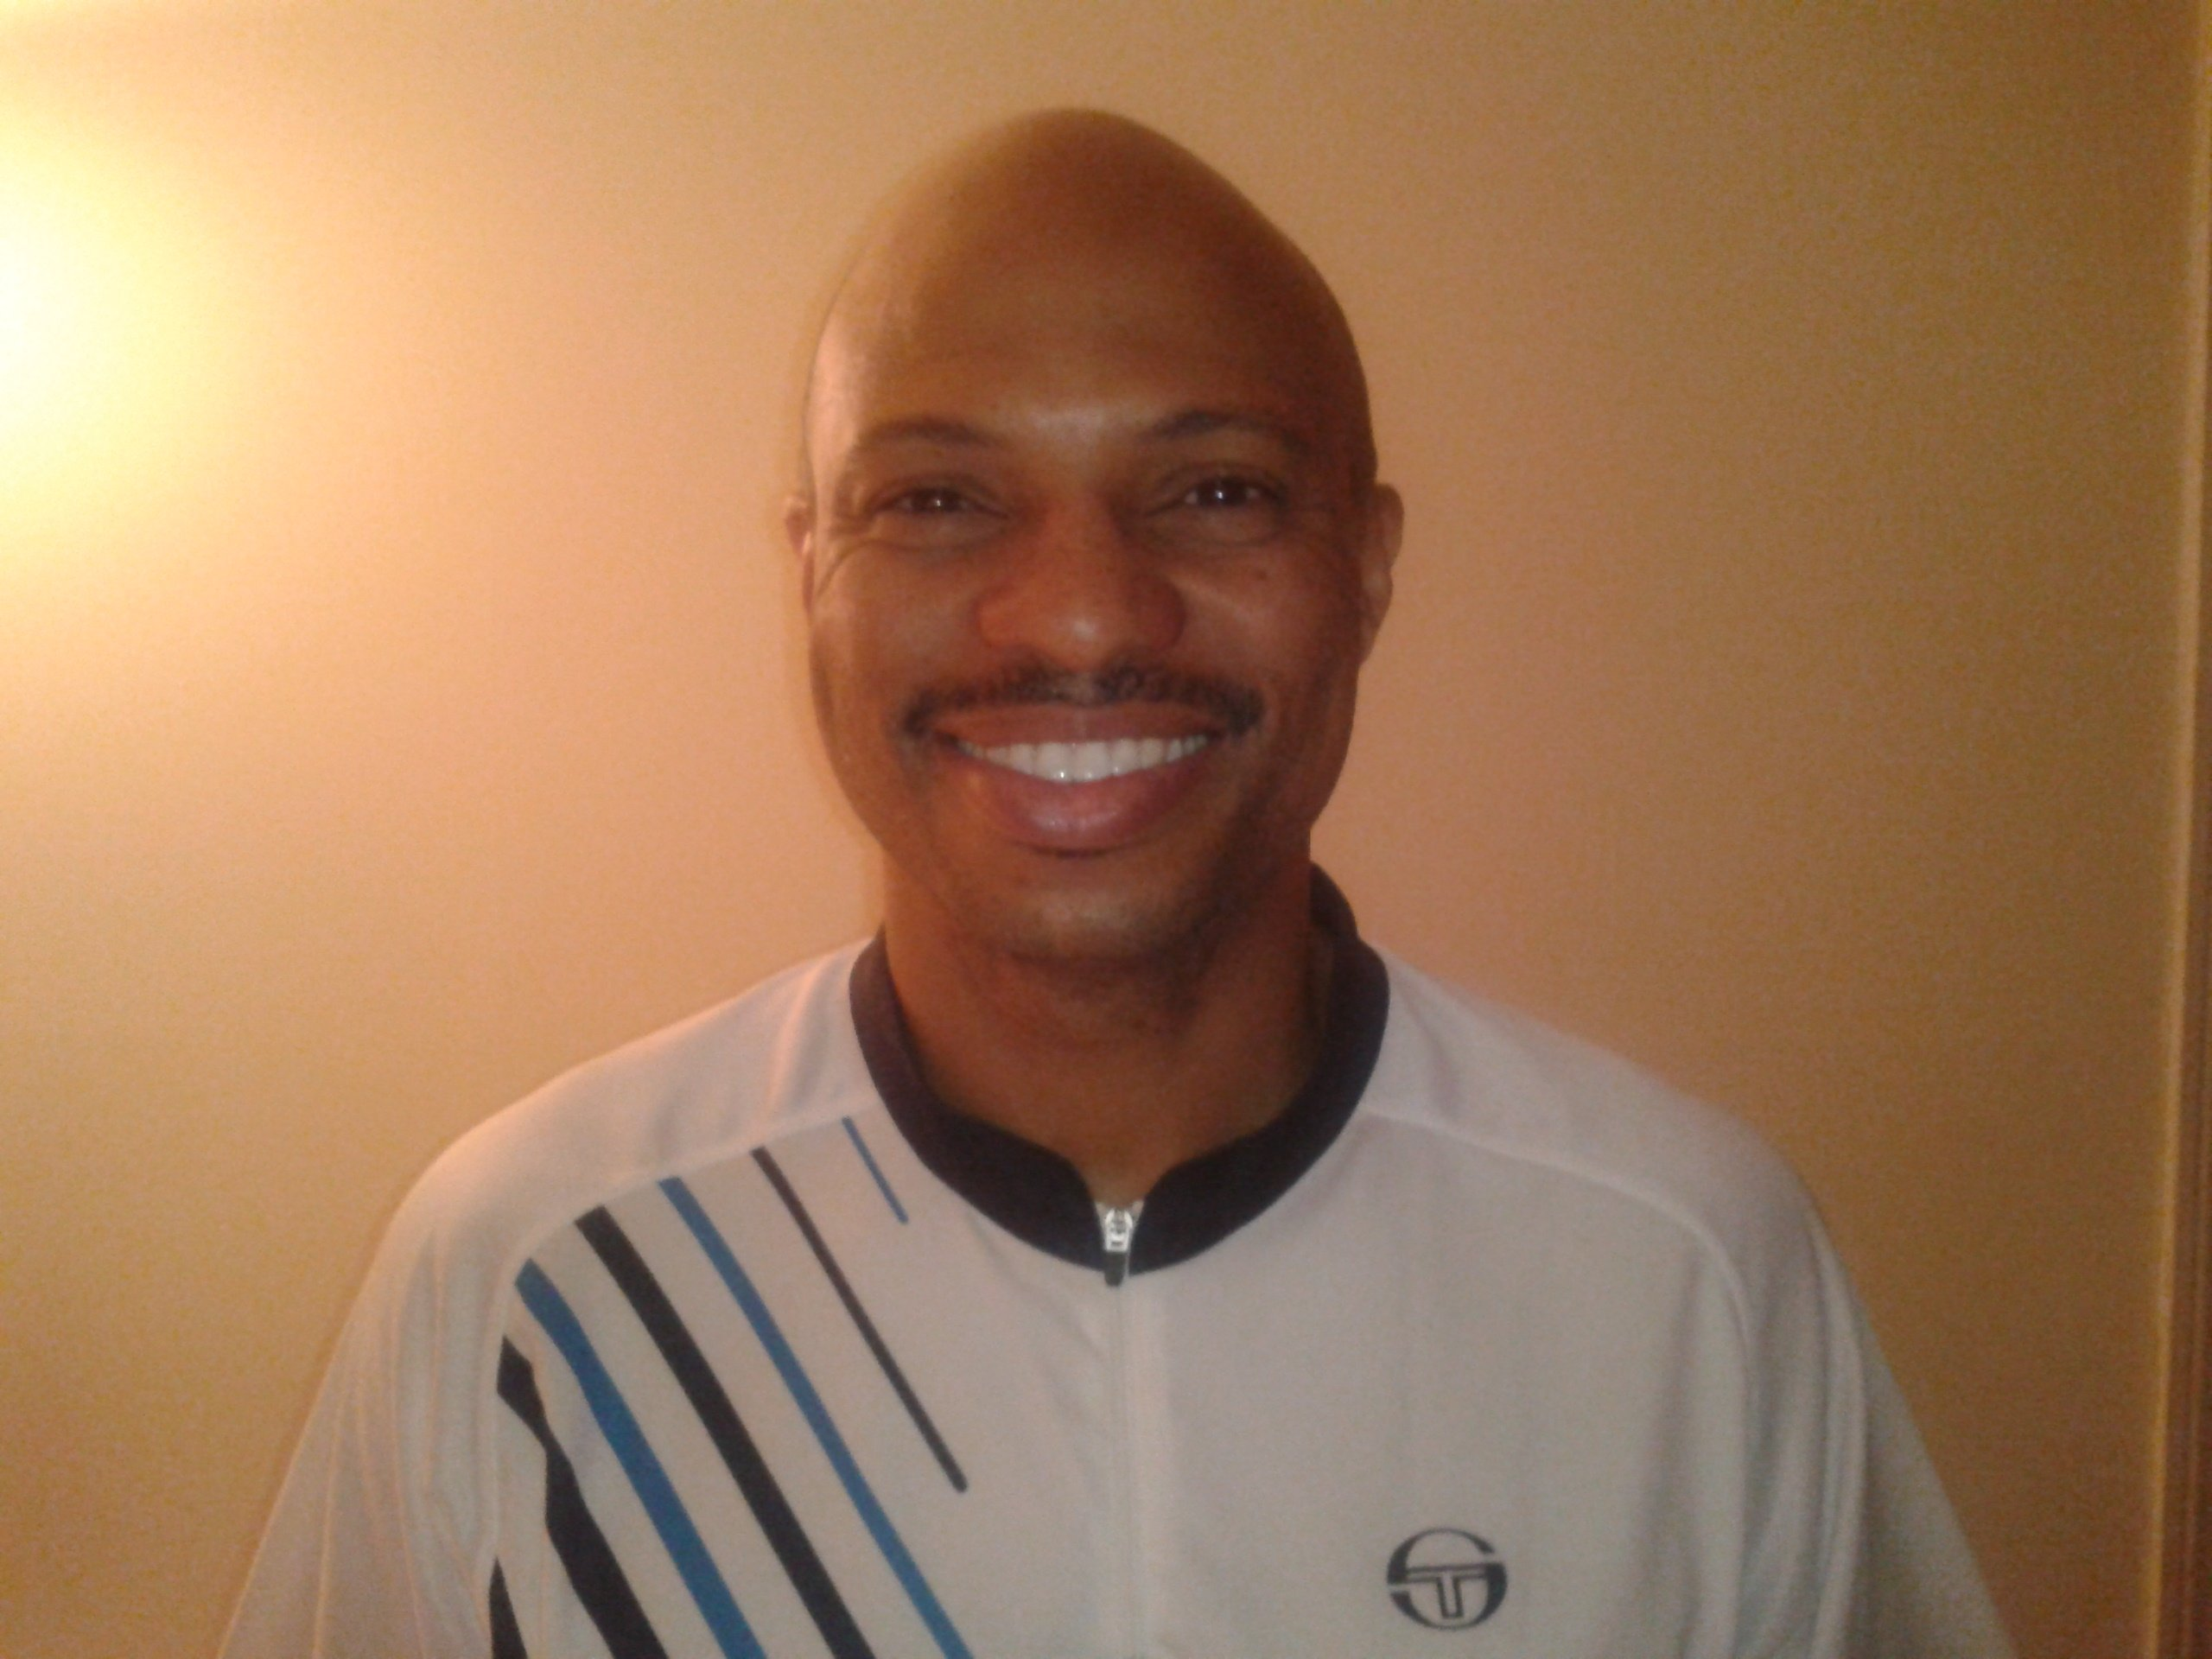 New PYC Tennis Pro: Amaate Neil offering Tennis Lessons in Bethesda, MD